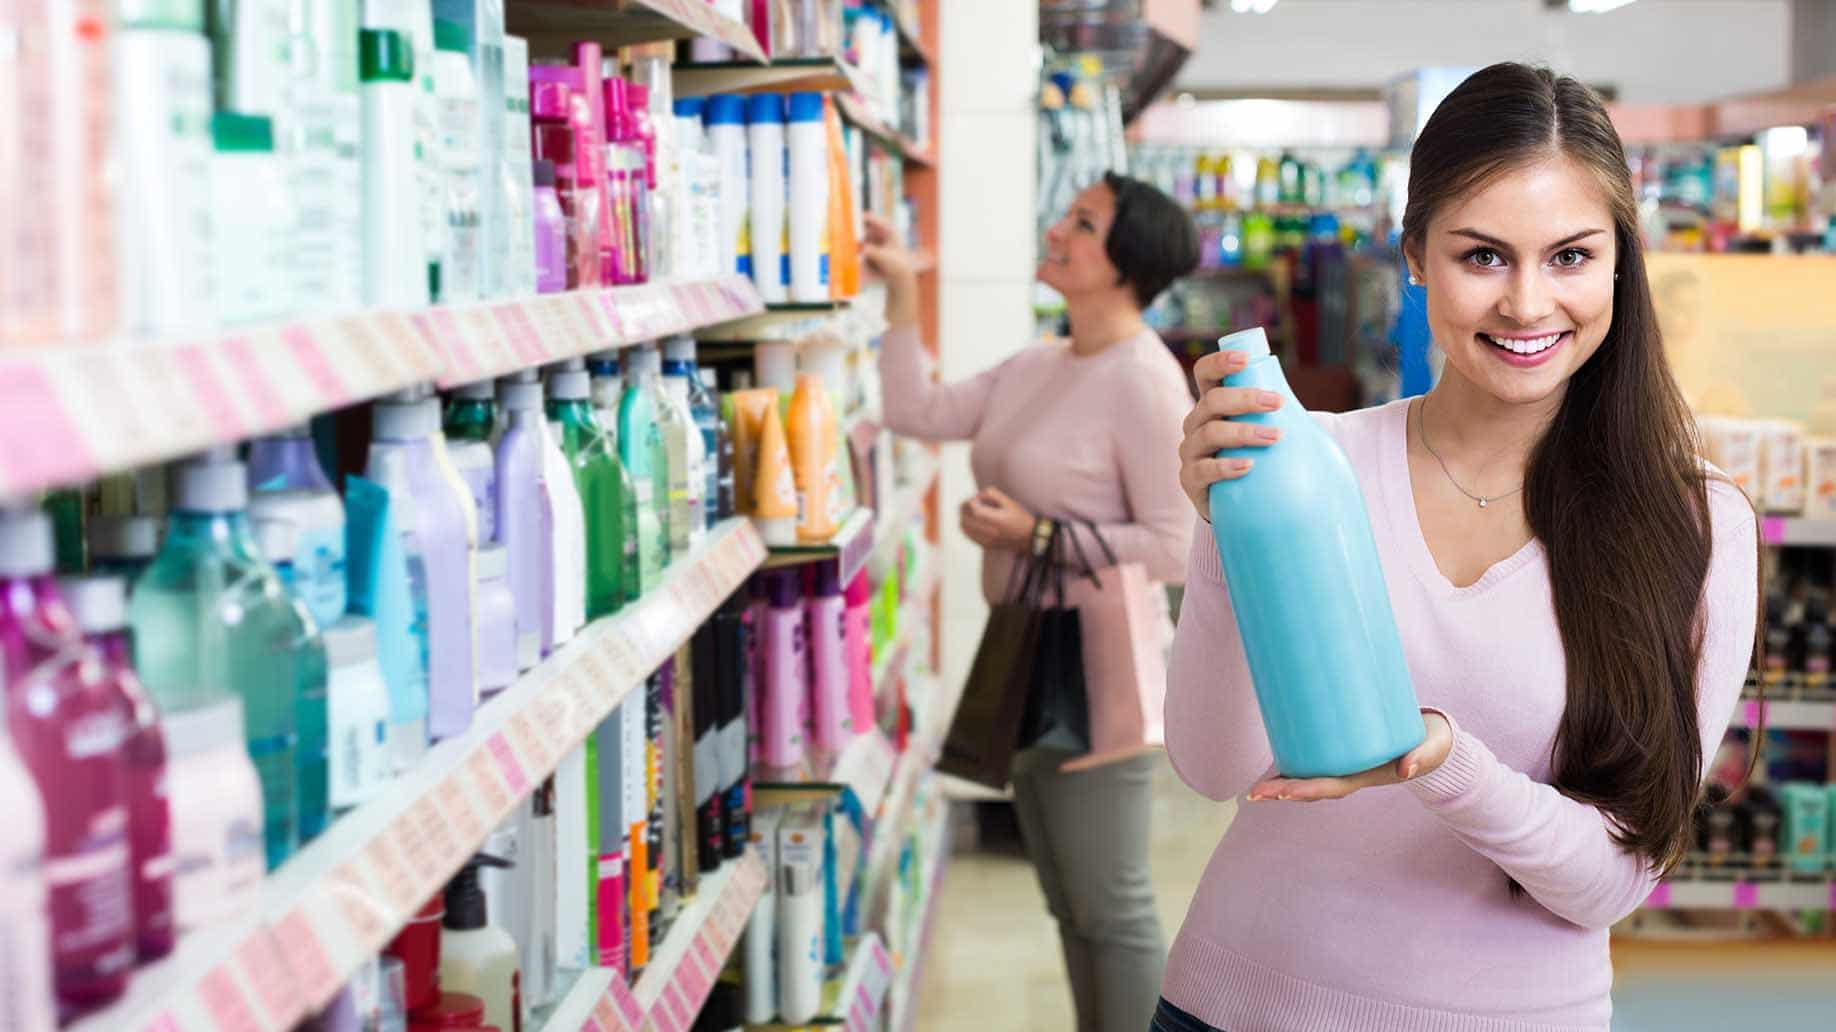 woman checking shampoo bottles